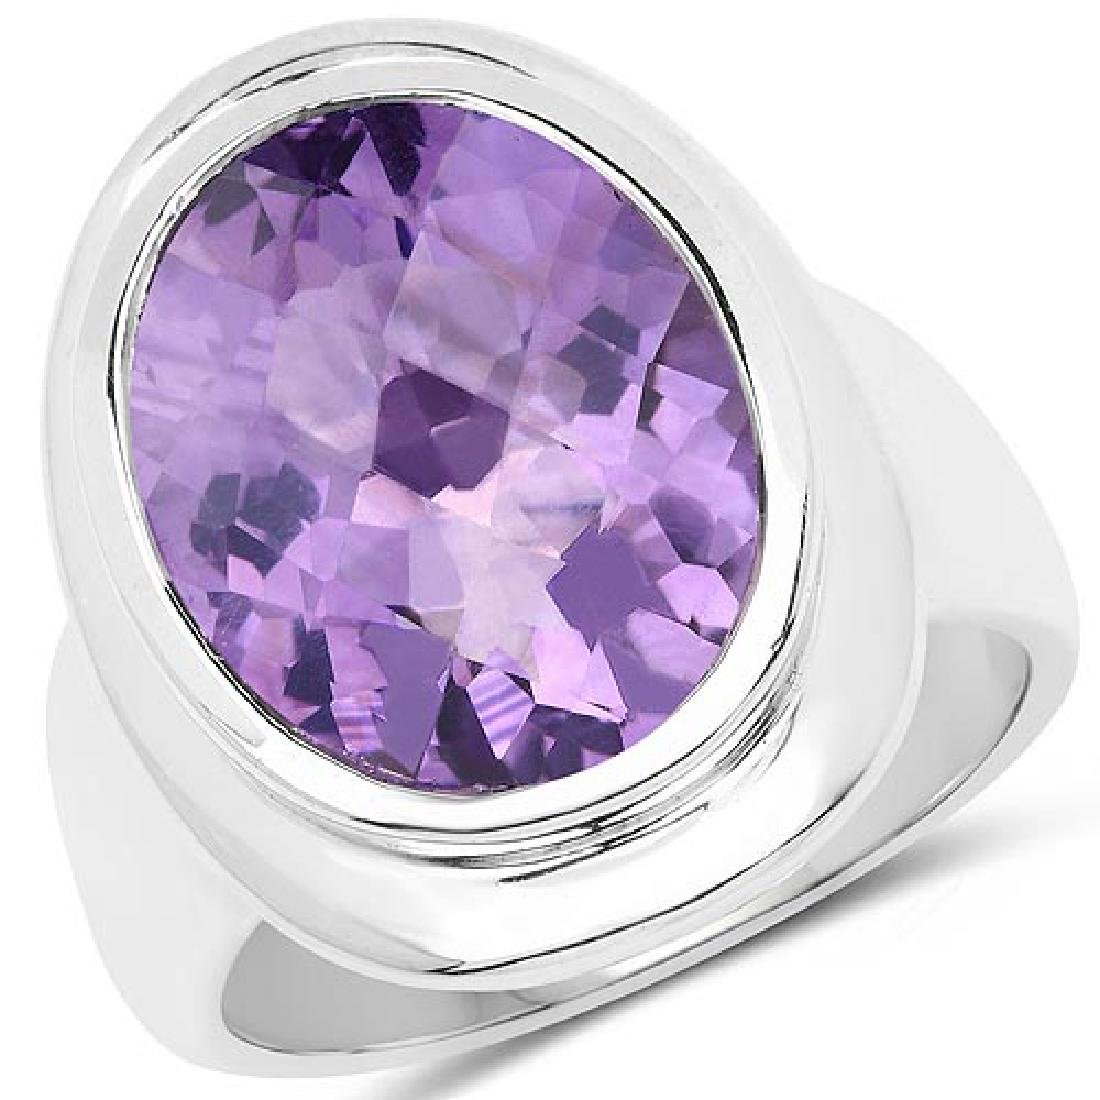 9.01 Carat Genuine Amethyst .925 Sterling Silver Ring